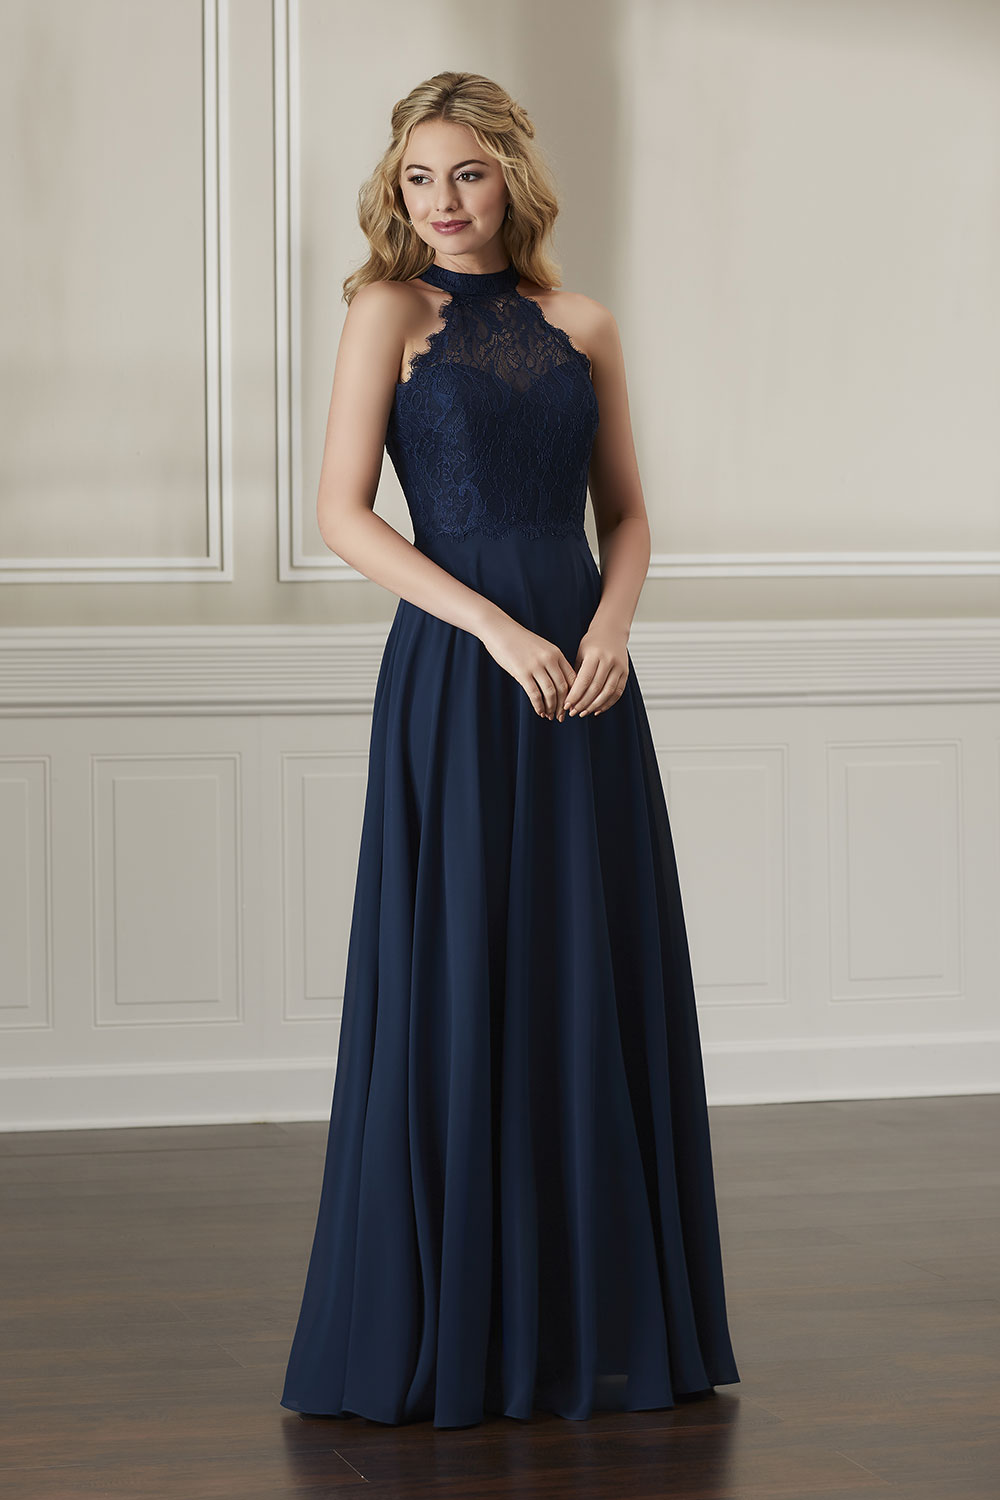 bridesmaid-dresses-jacquelin-bridals-canada-26842